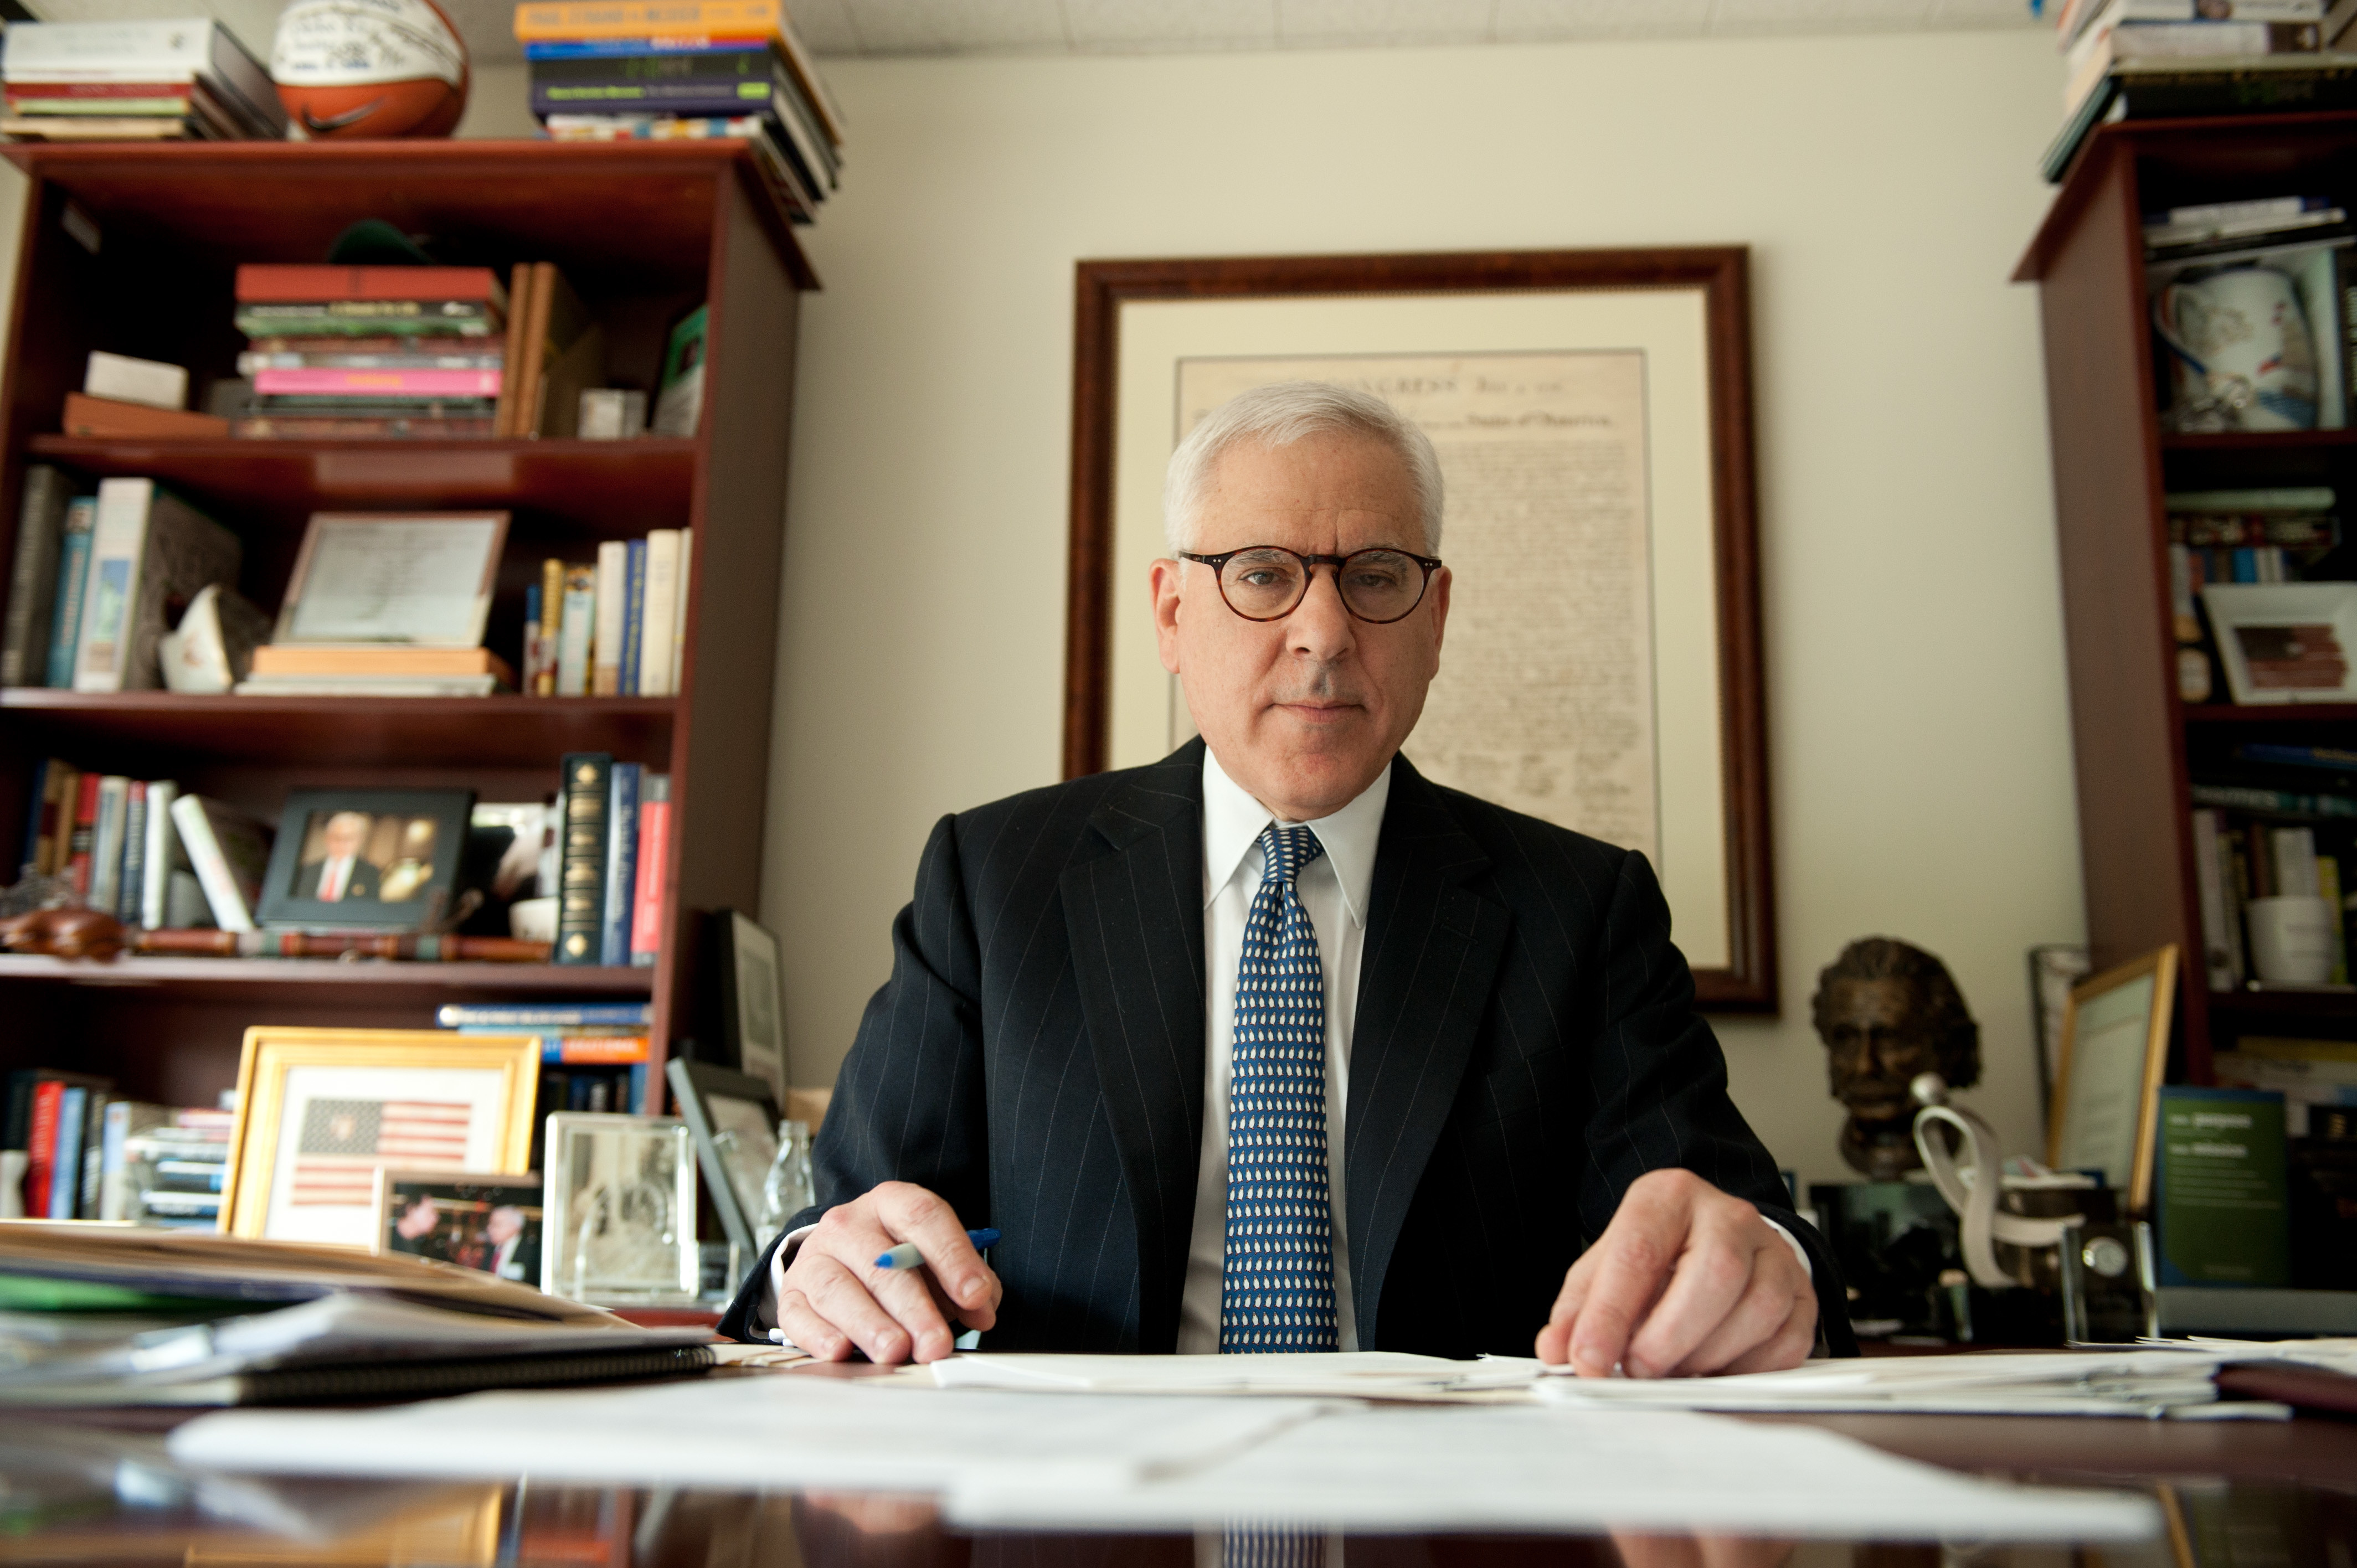 David Rubenstein, Co-Founder and Co-Executive Chairman, The Carlyle Group